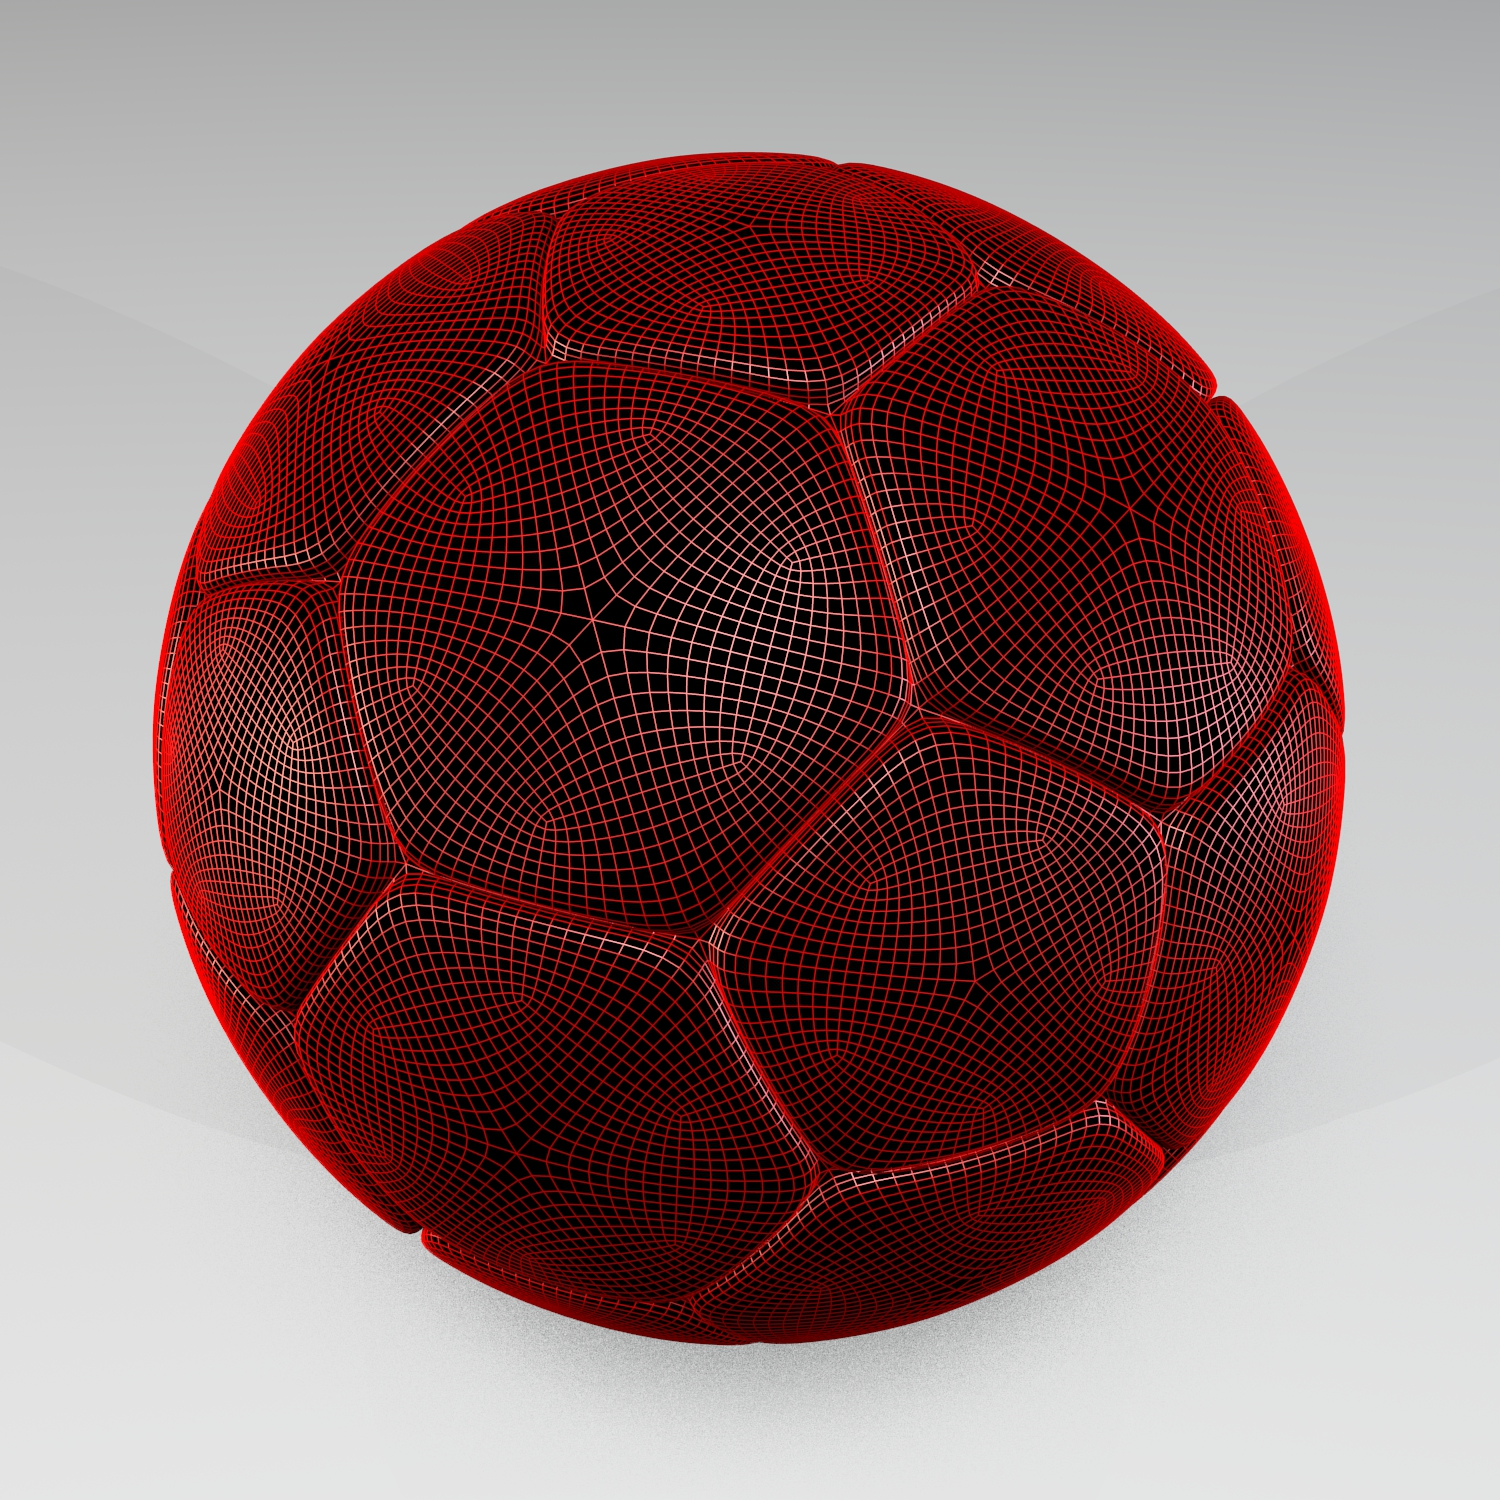 soccer ball v2 3d model blend obj 116218